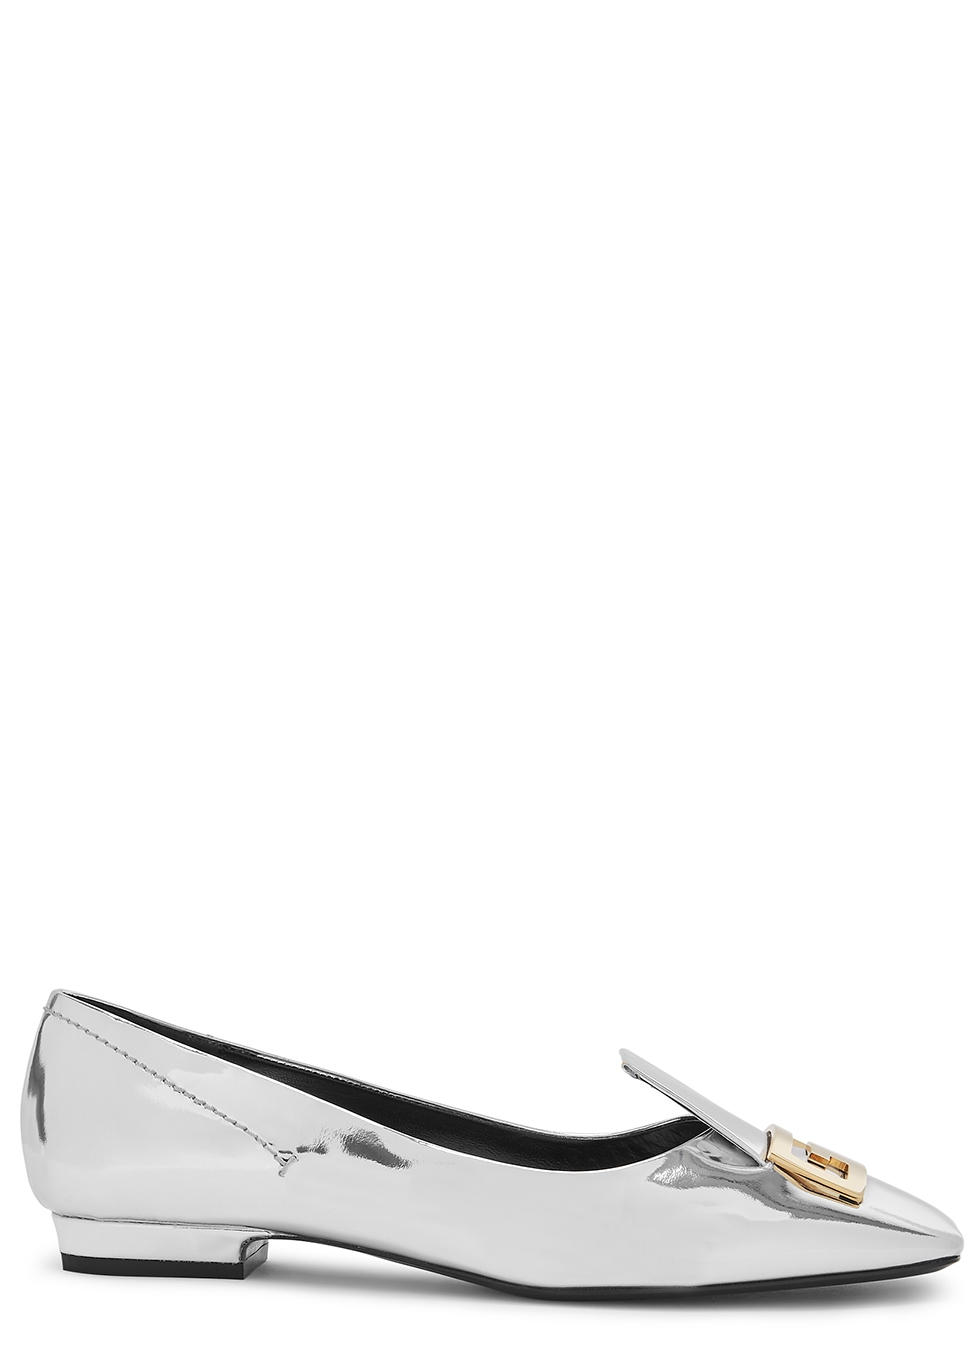 Mystic silver leather loafers